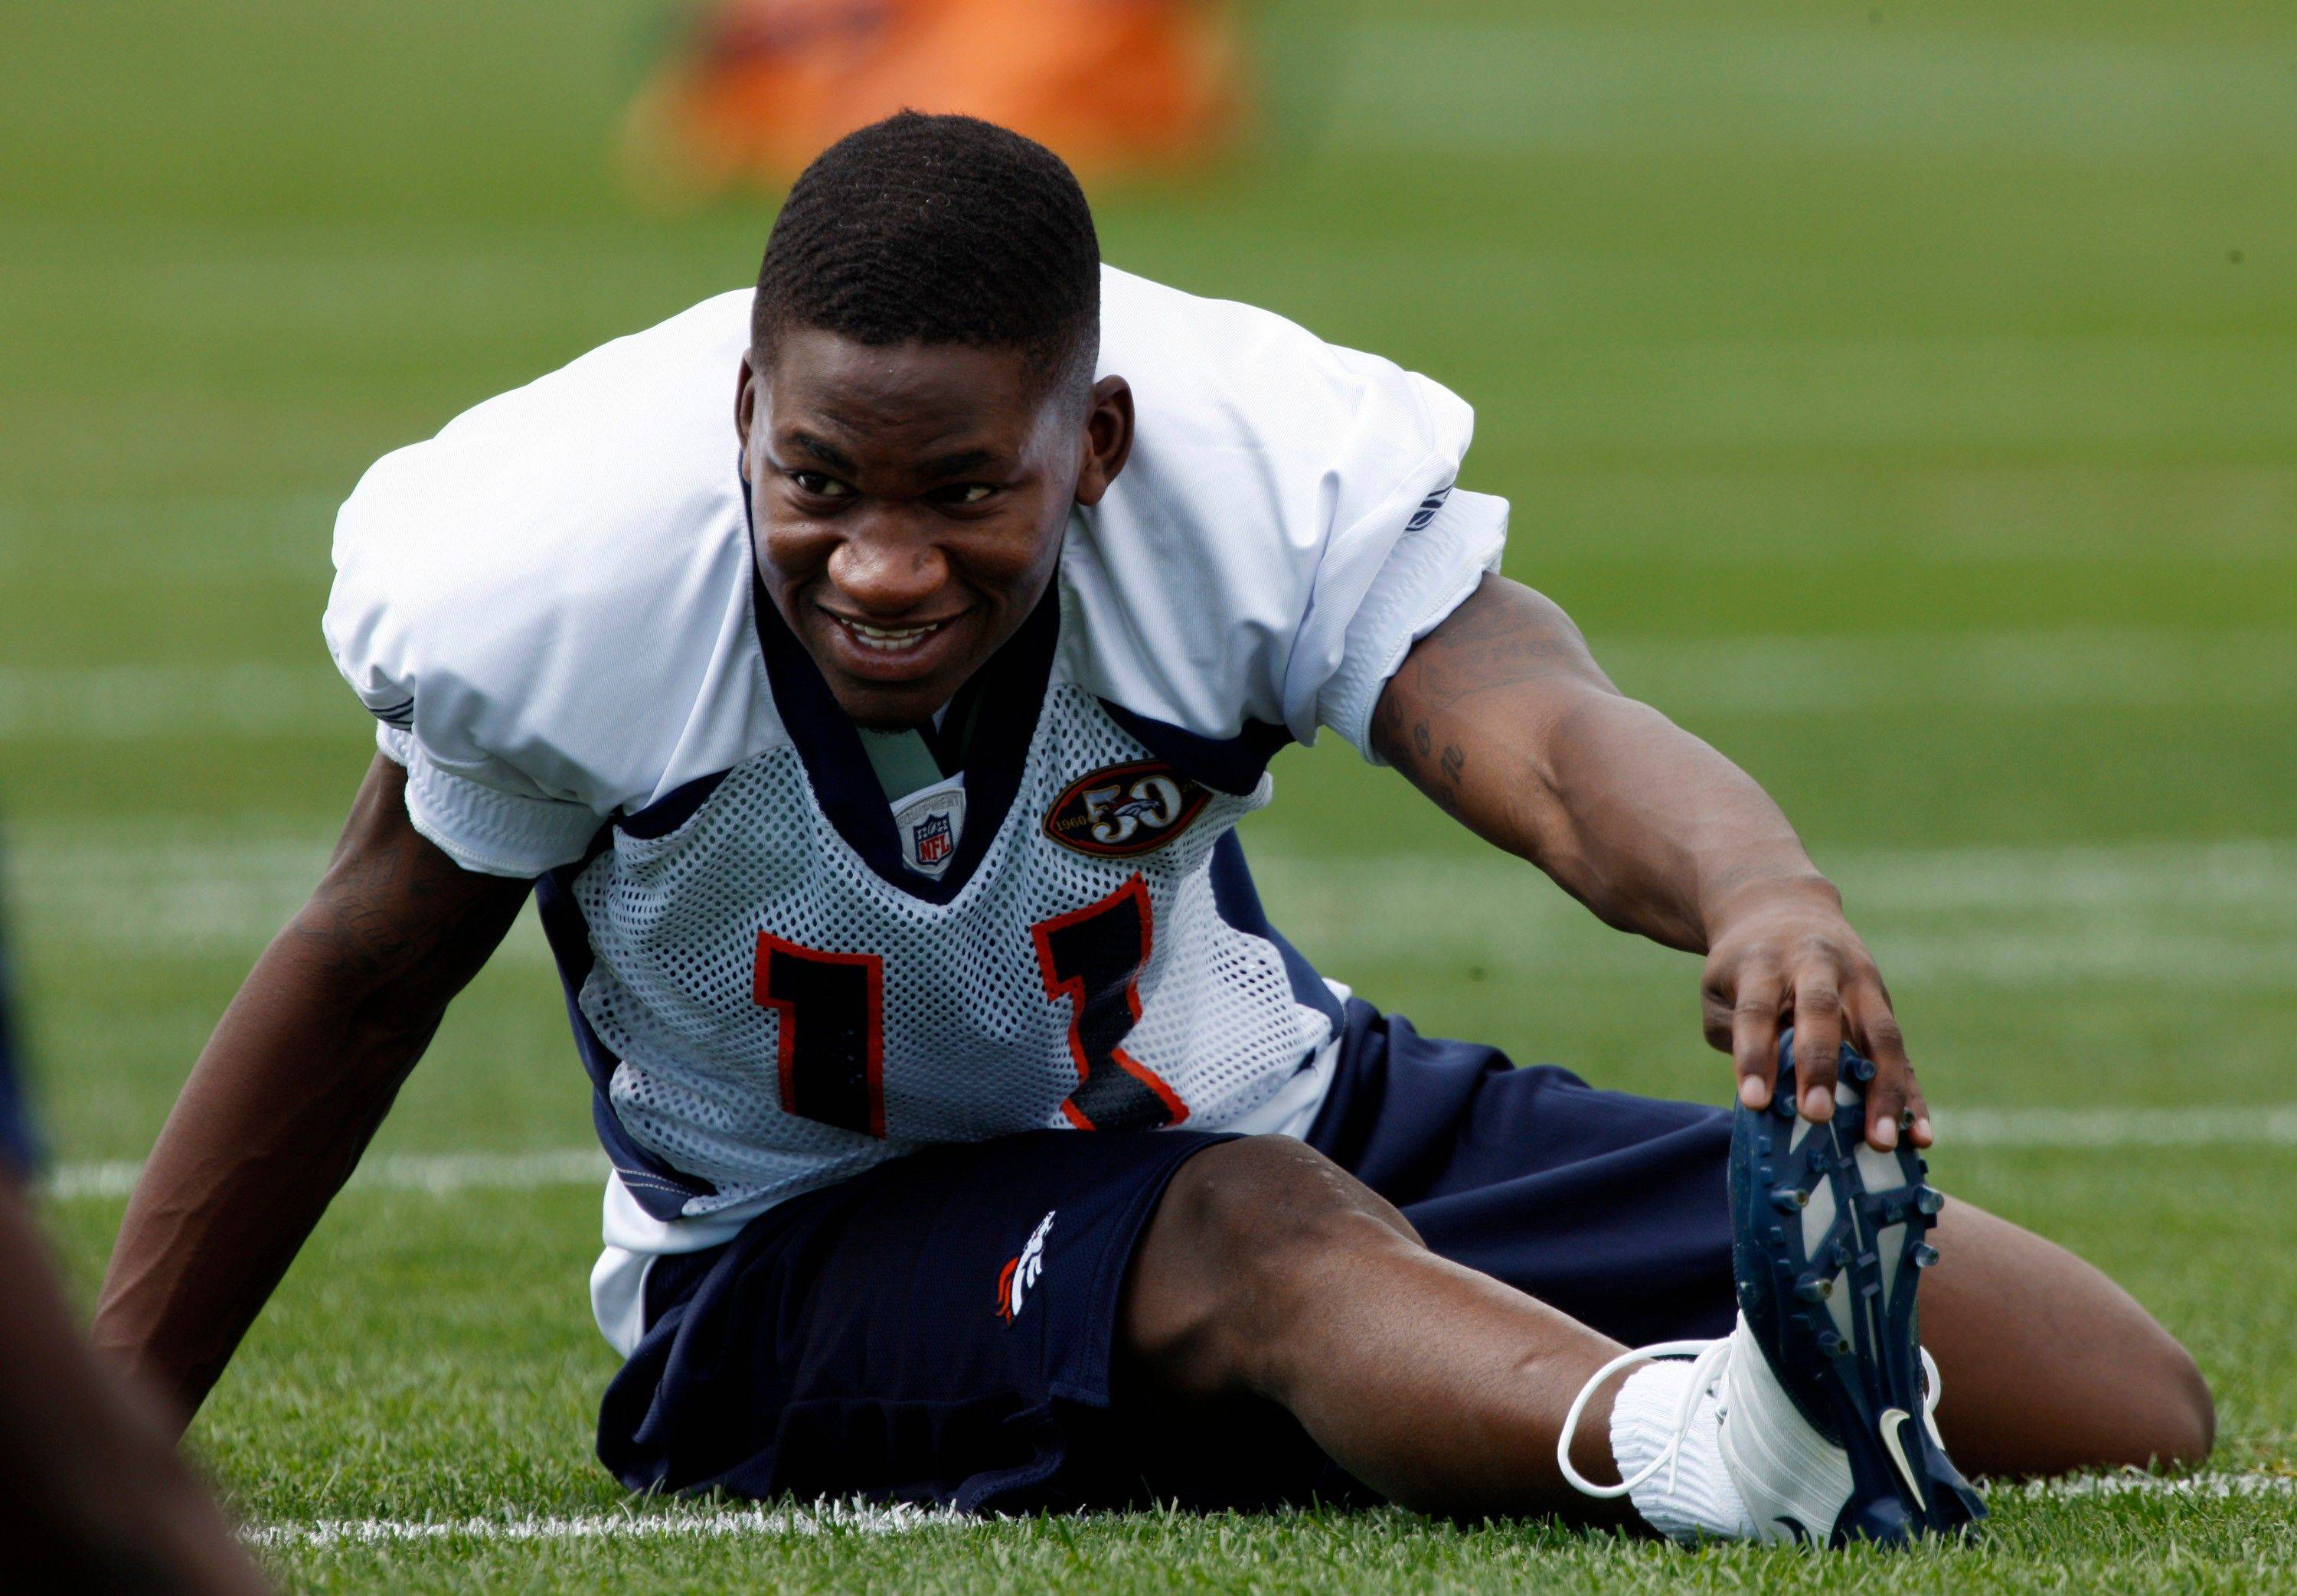 This is a July 29, 2009 file photo showing Denver Broncos rookie wide receiver Kenny McKinley stretching before drills at the team�s training camp in Englewood, Colo. The empty locker that served as a shrine is no longer there. Neither are the No. 11 helmet decals that his Broncos teammates wore in McKinley�s honor after he committed suicide last year. Tuesday, Sept. 20, 2011 marked the one-year anniversary of McKinley�s death.